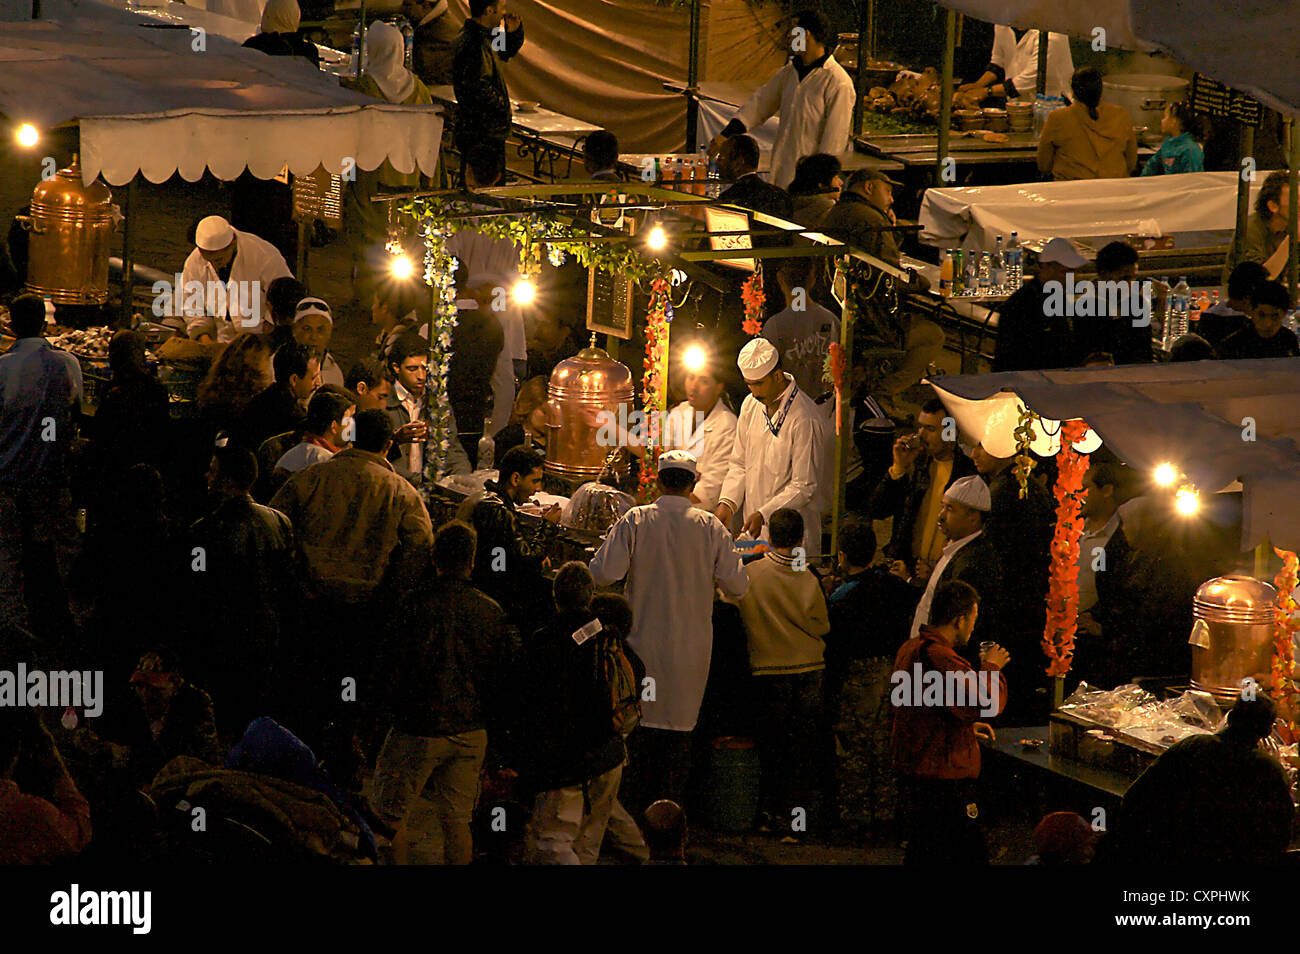 North Africa, Morraco, Marrakech. Night time dining at outdoor restaurants on Jemaa el-Fnaa Square. Stock Photo